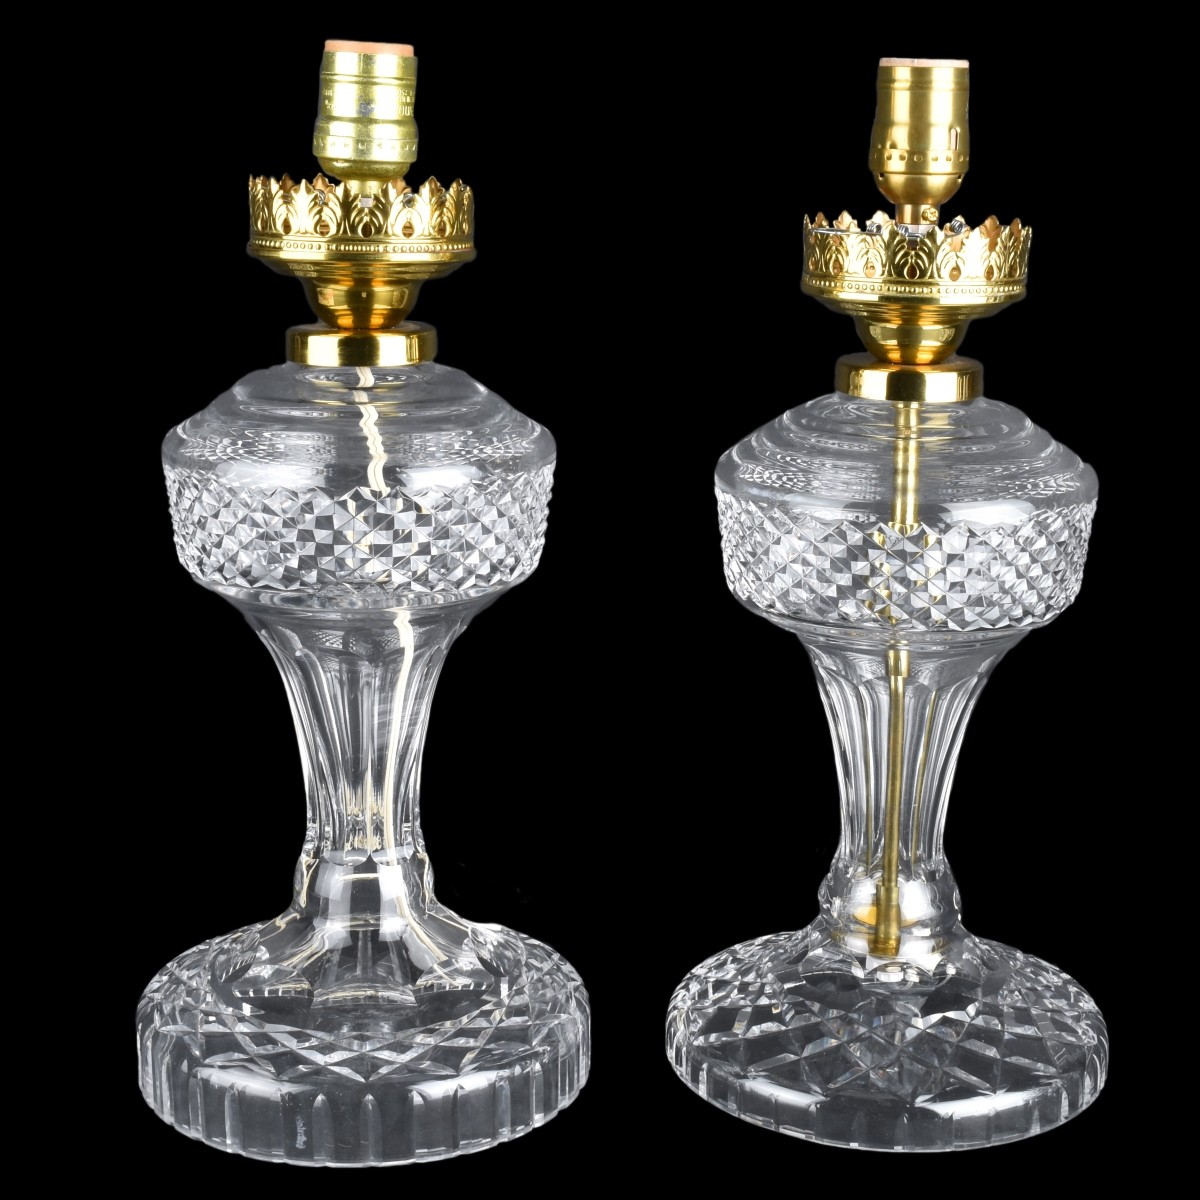 Two Waterford Hurricane Lamps